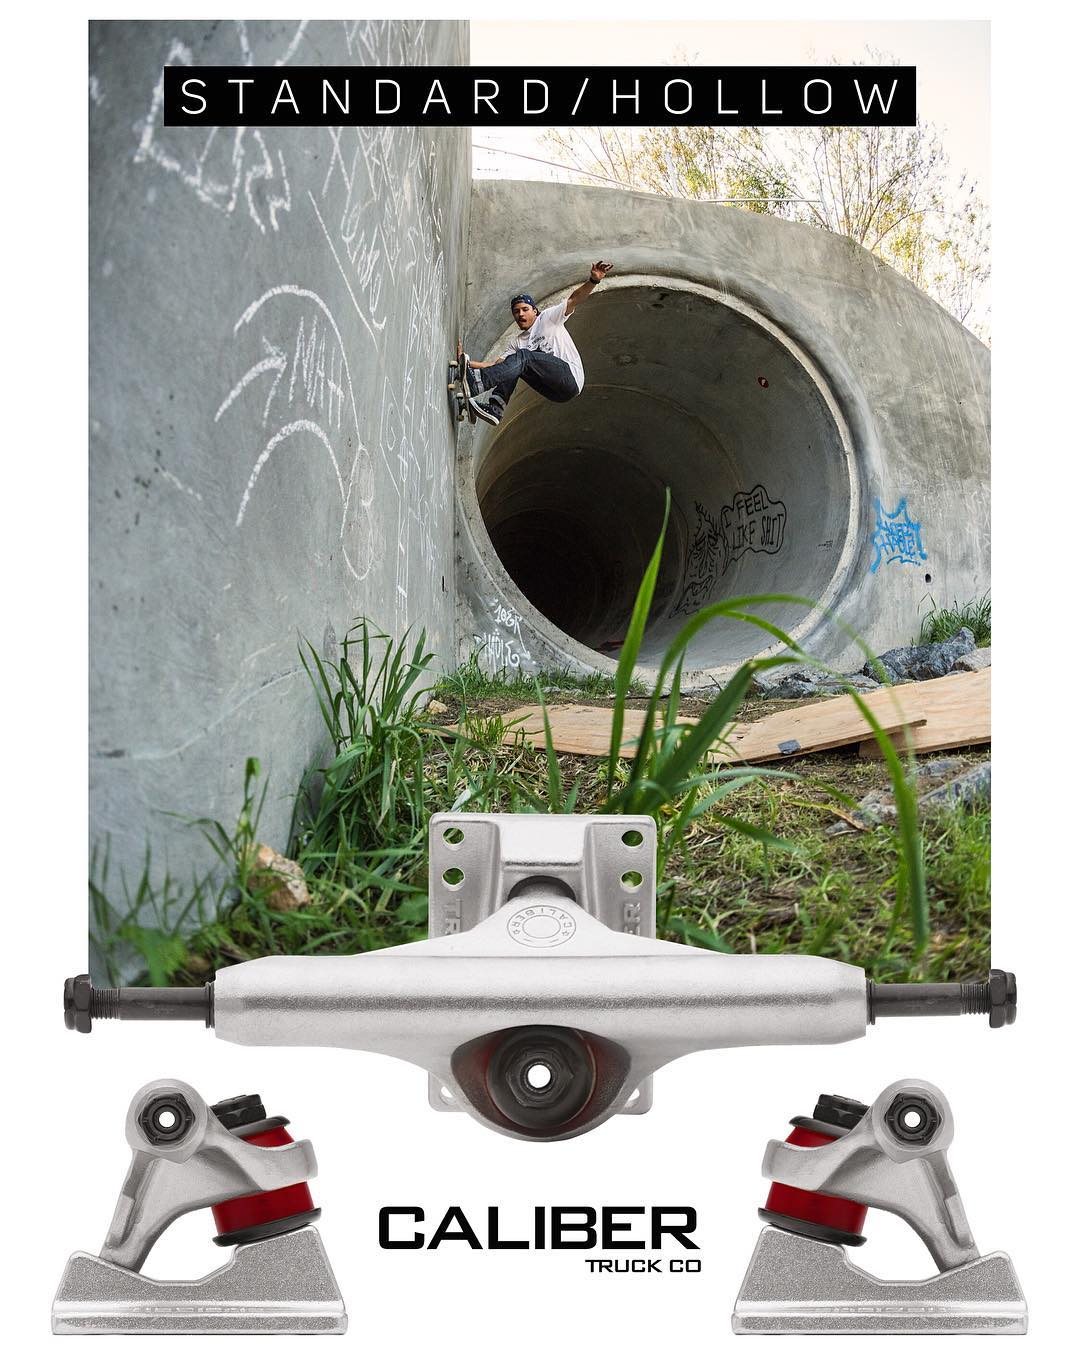 #Hollow #caliberstandards #OUTNOW - AVAILABLE at your local skateshop! #hollowkingpins #hollowaxles / Rider @radicalsmith